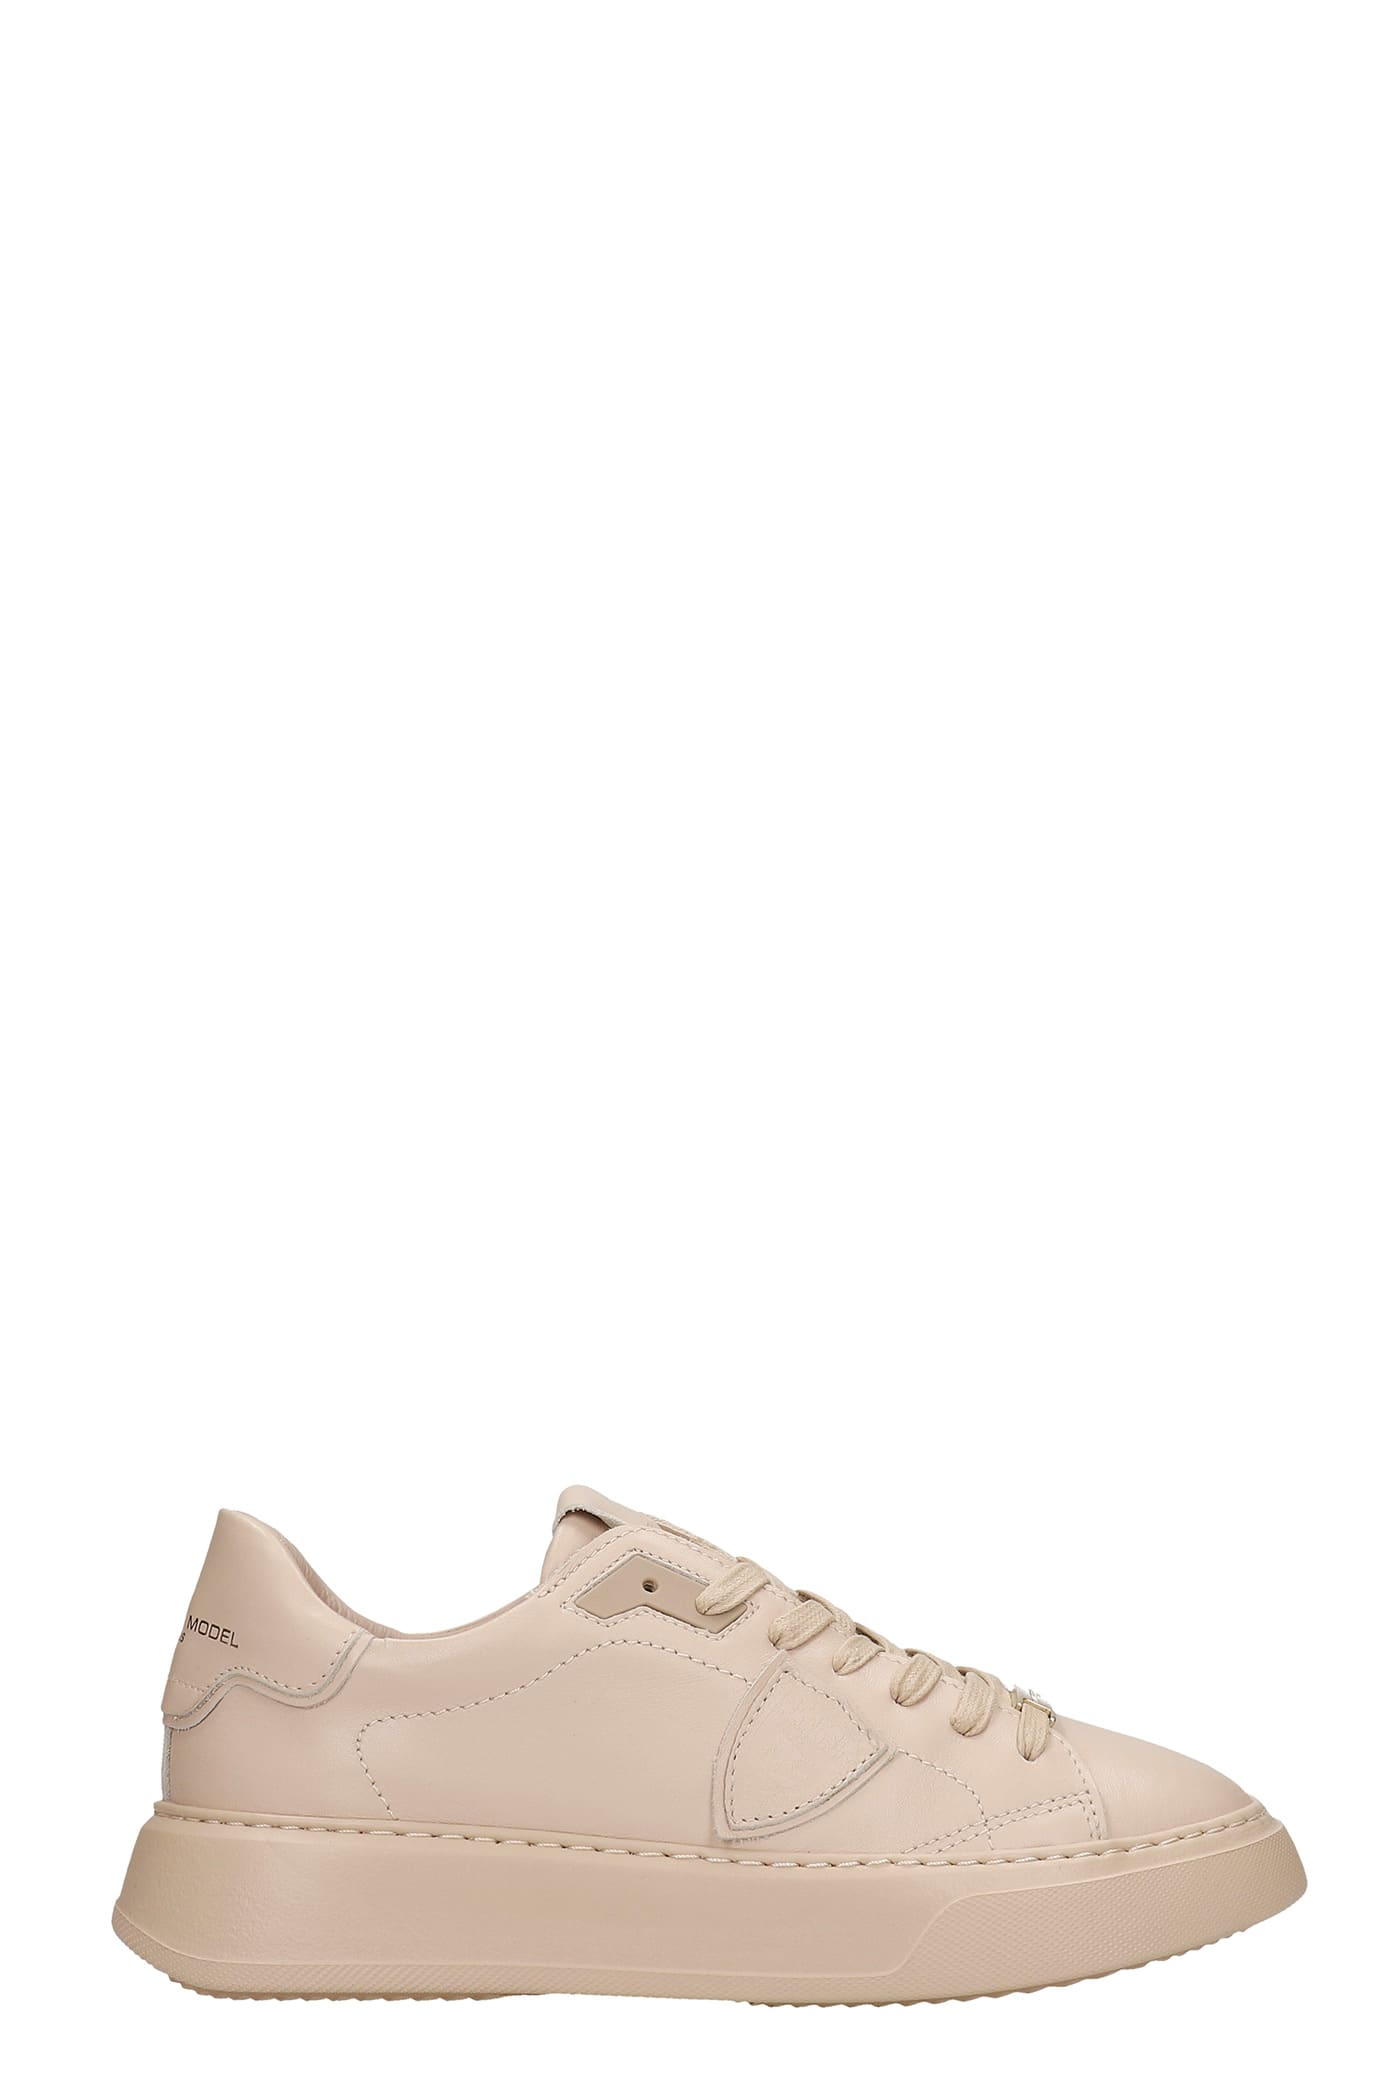 Philippe Model TEMPLE SNEAKERS IN BEIGE LEATHER